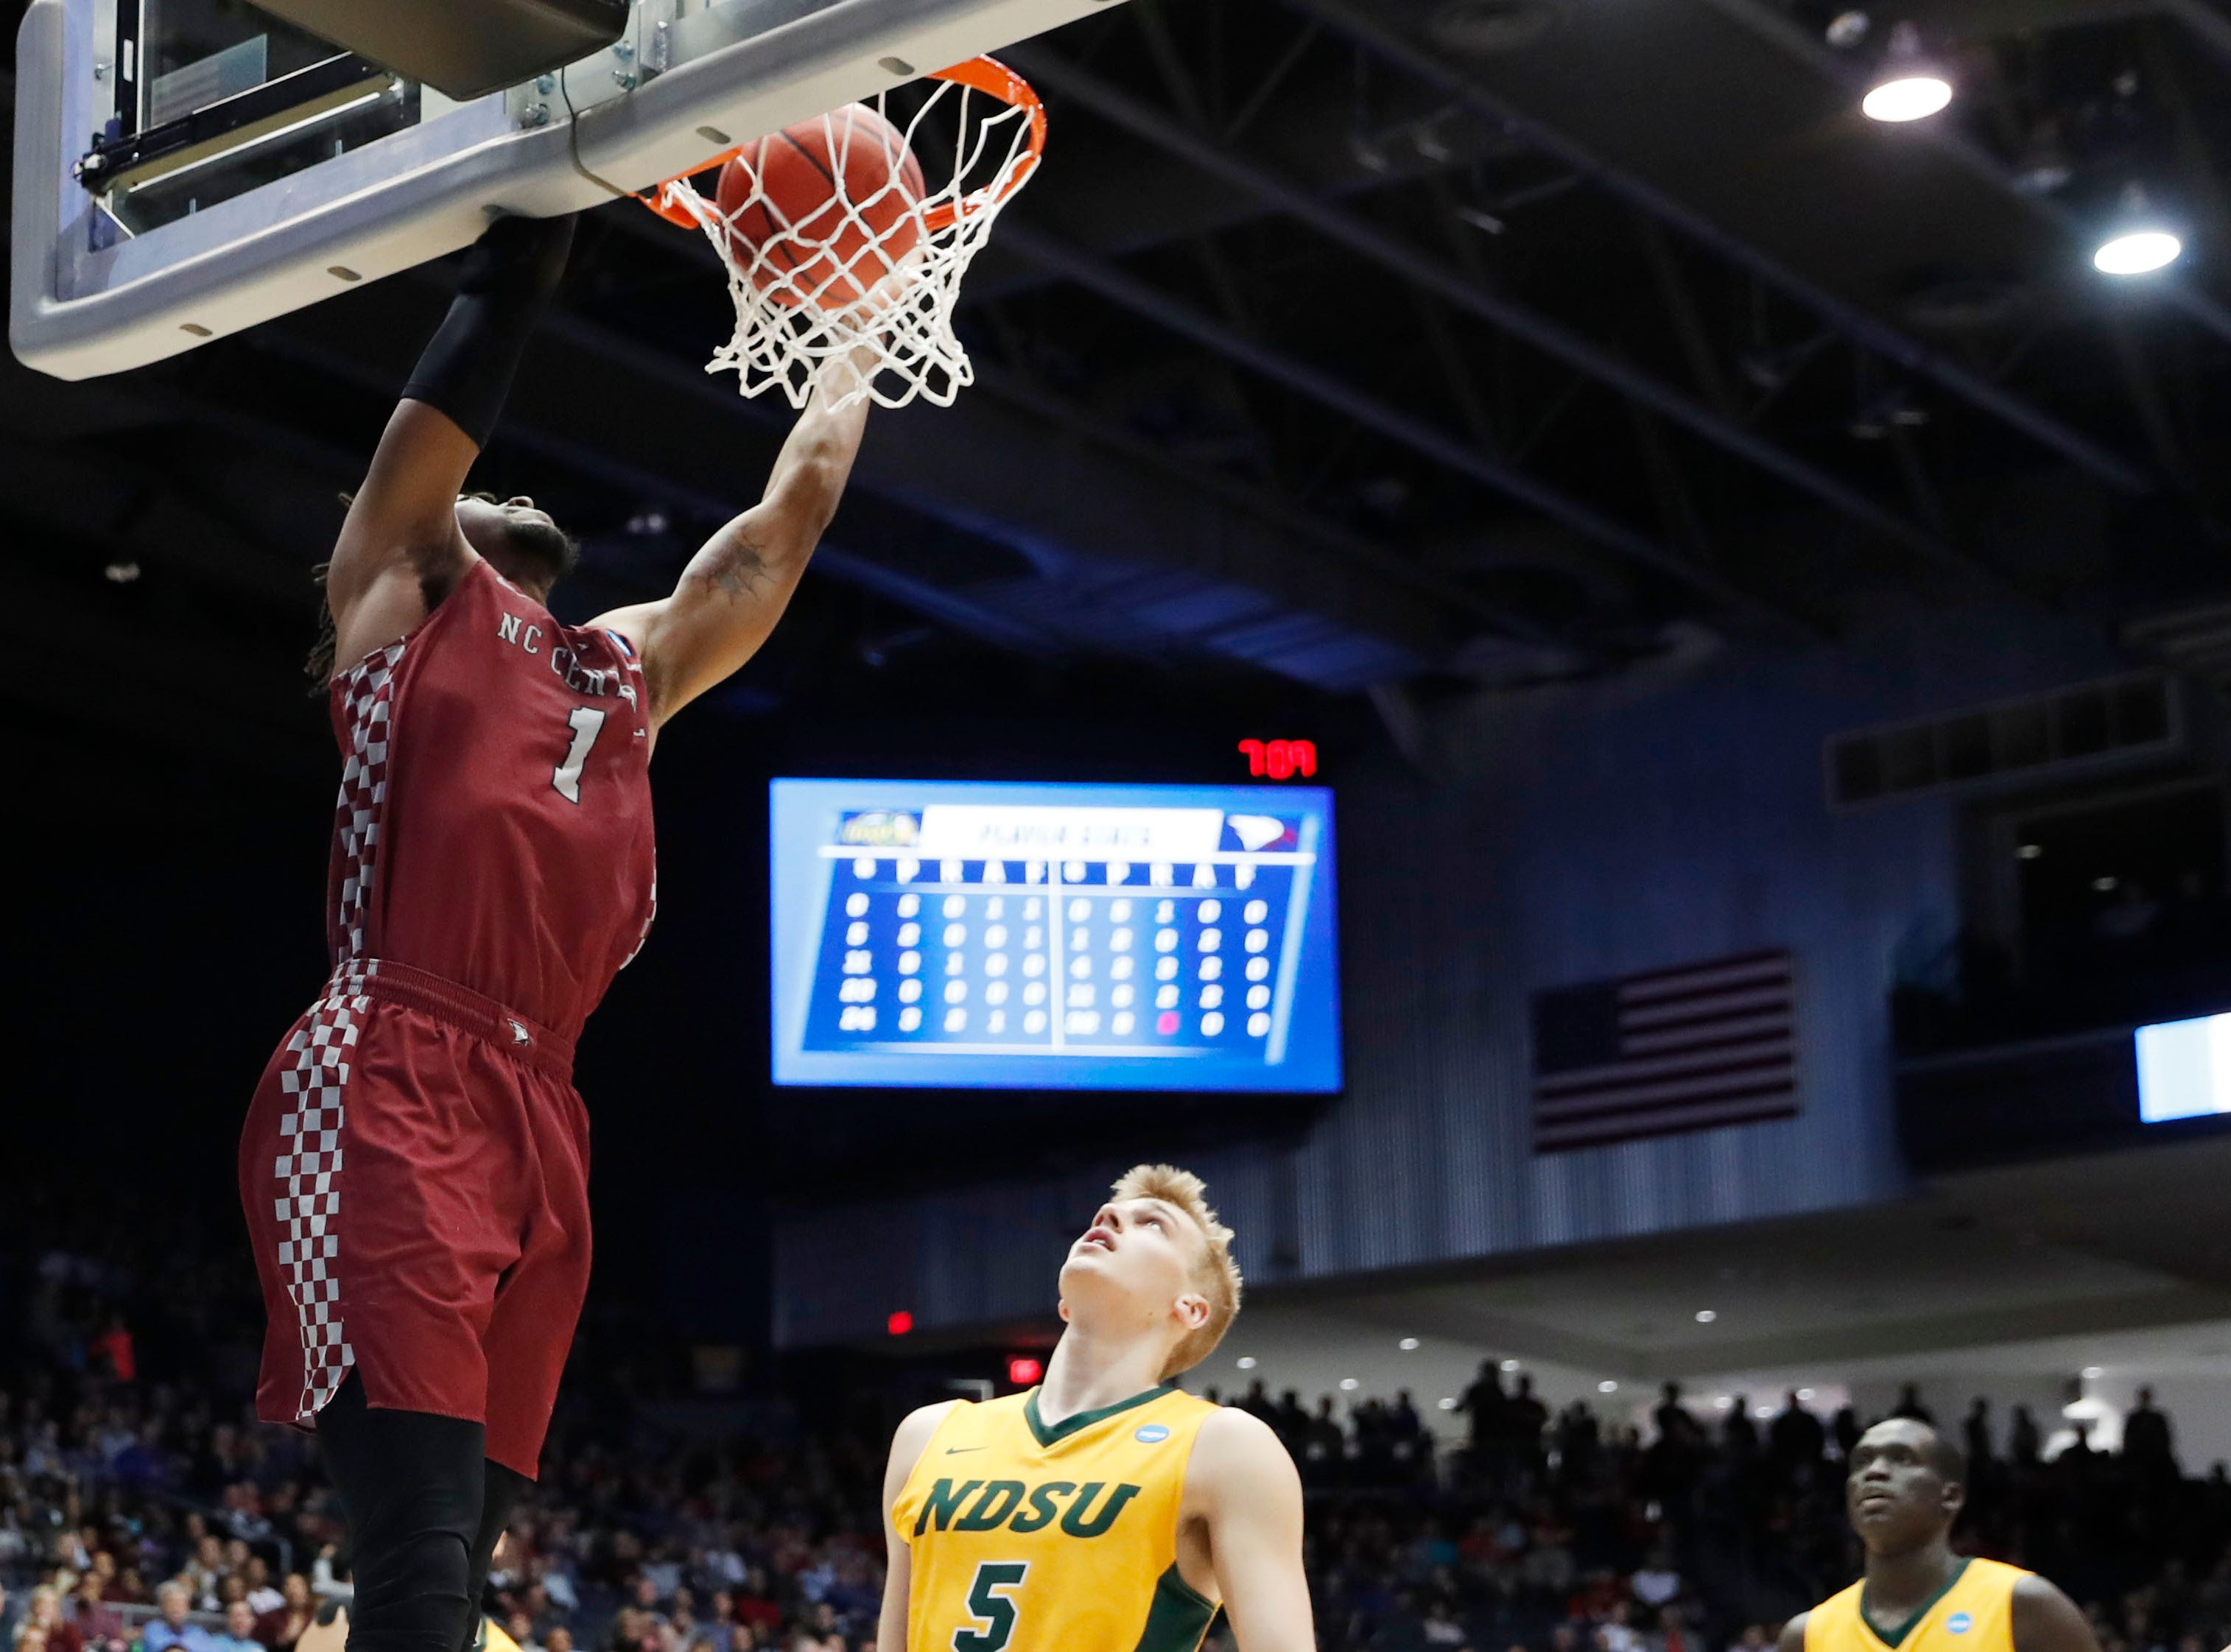 North Carolina Central Eagles forward Zacarry Douglas (1) dunks the ball in the first half against the North Dakota State Bison.